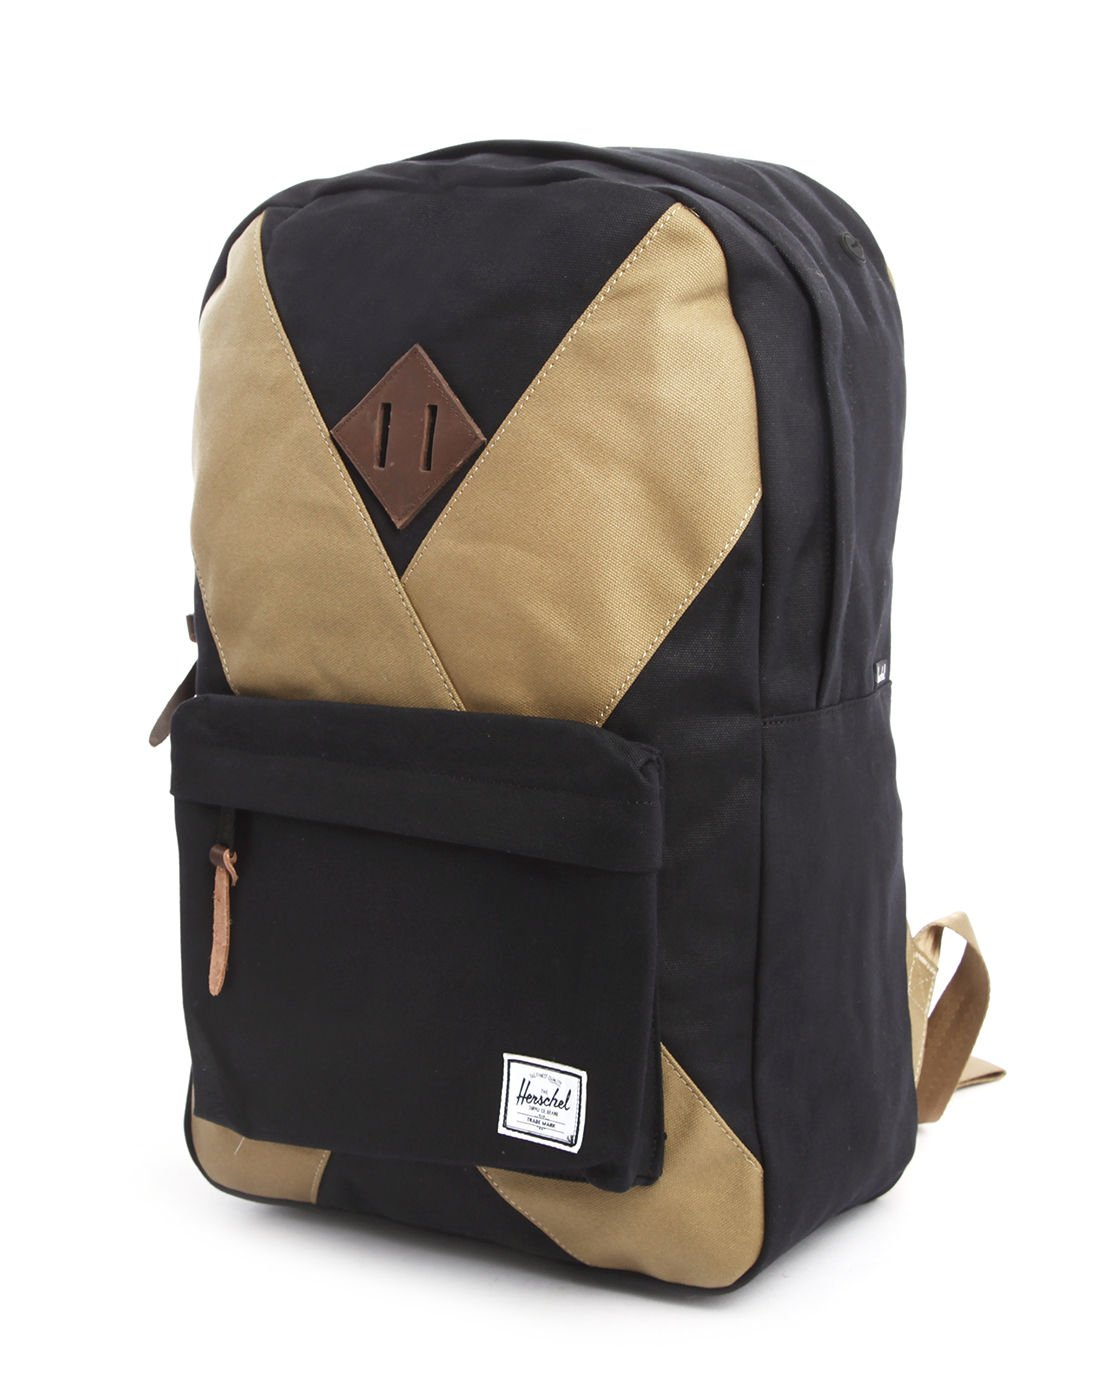 herschel supply co heritage internet exclusive black and beige backpack in black for men lyst. Black Bedroom Furniture Sets. Home Design Ideas